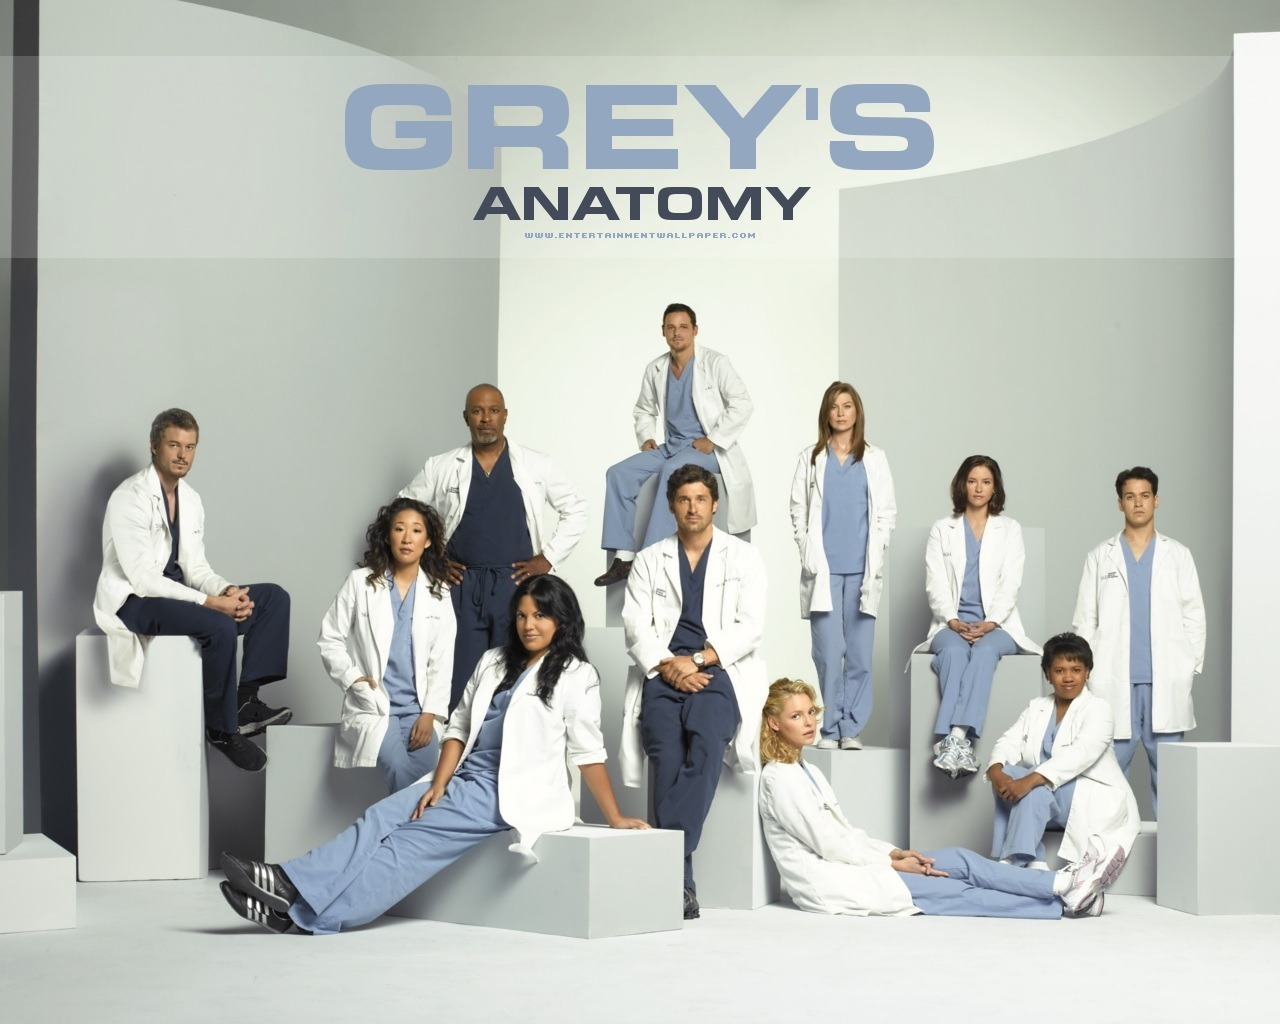 Grey's Anatomy - Grey's Anatomy Wallpaper (1450910) - Fanpop